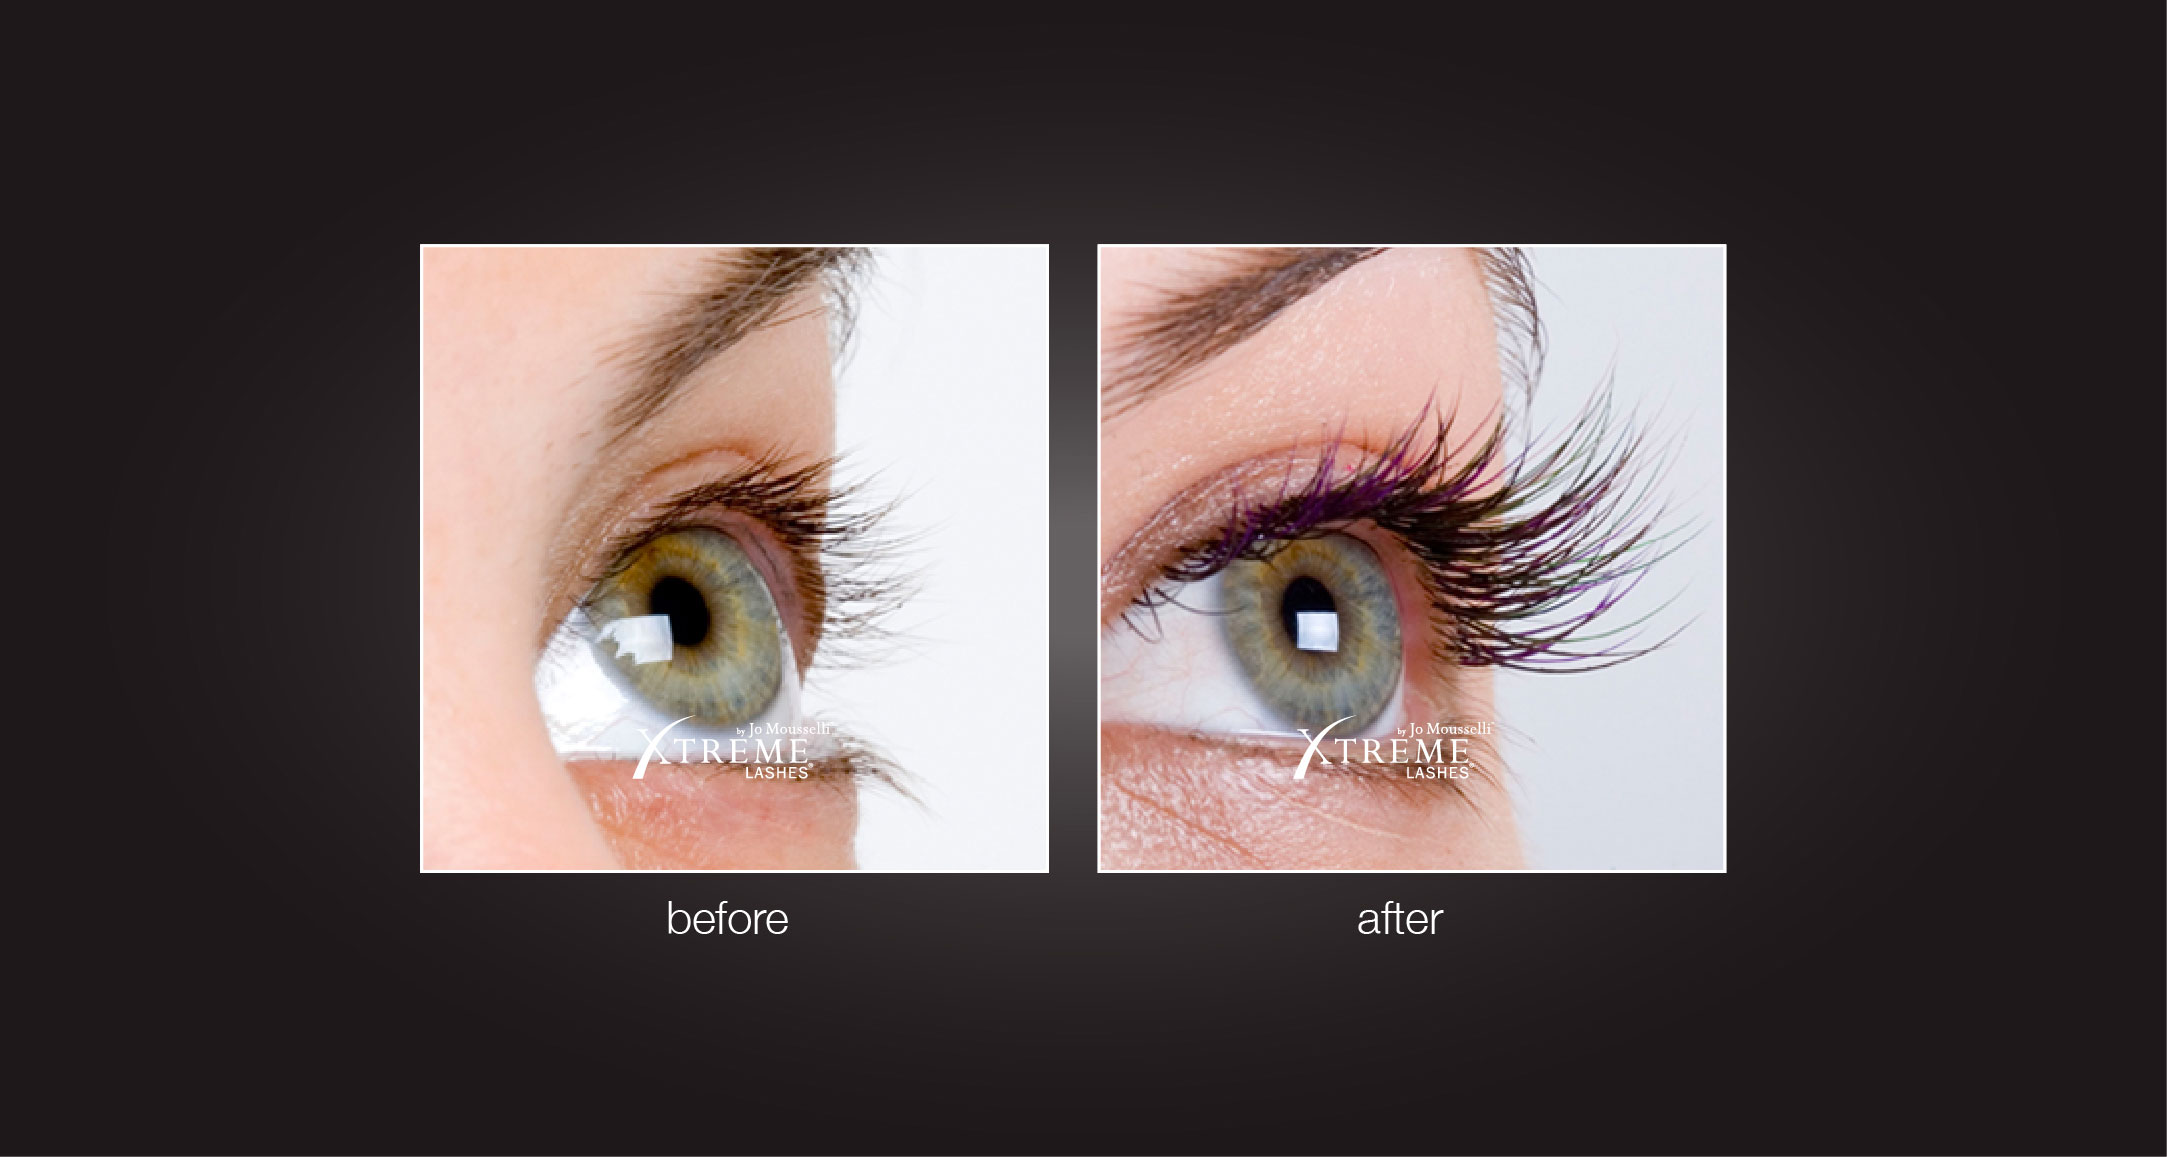 Eyelash Extensions Before and After Photos